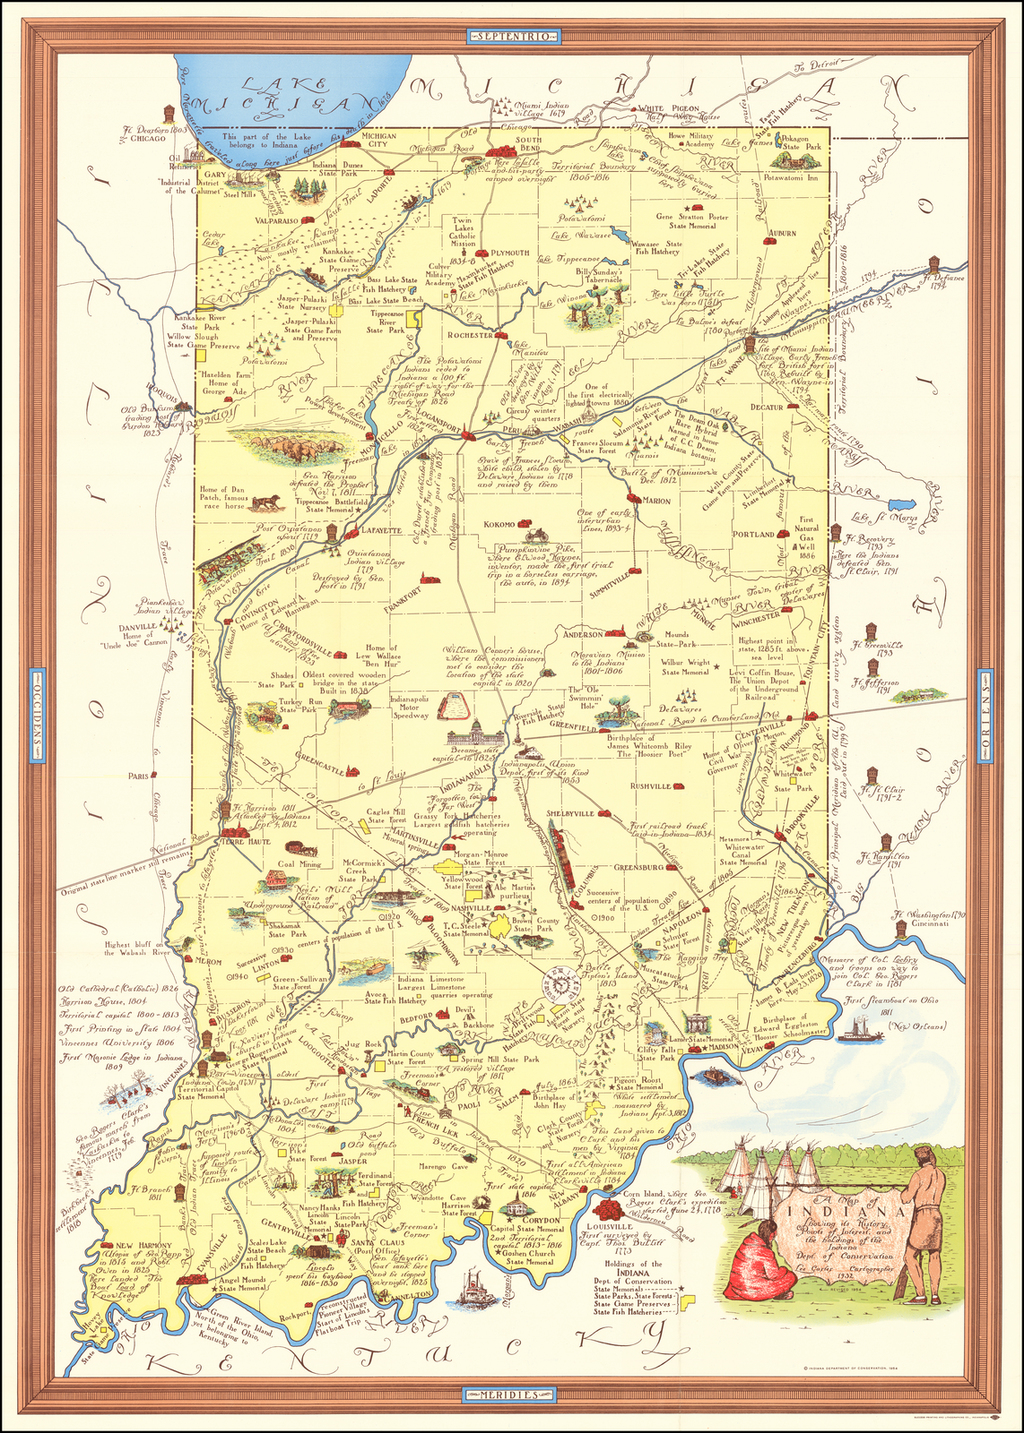 A Map of Indiana Showing its History, Points of Interest, and the holdings of the Indiana Dept. of Conservation.  Lee Carter Cartographer 1932. By Lee Carter